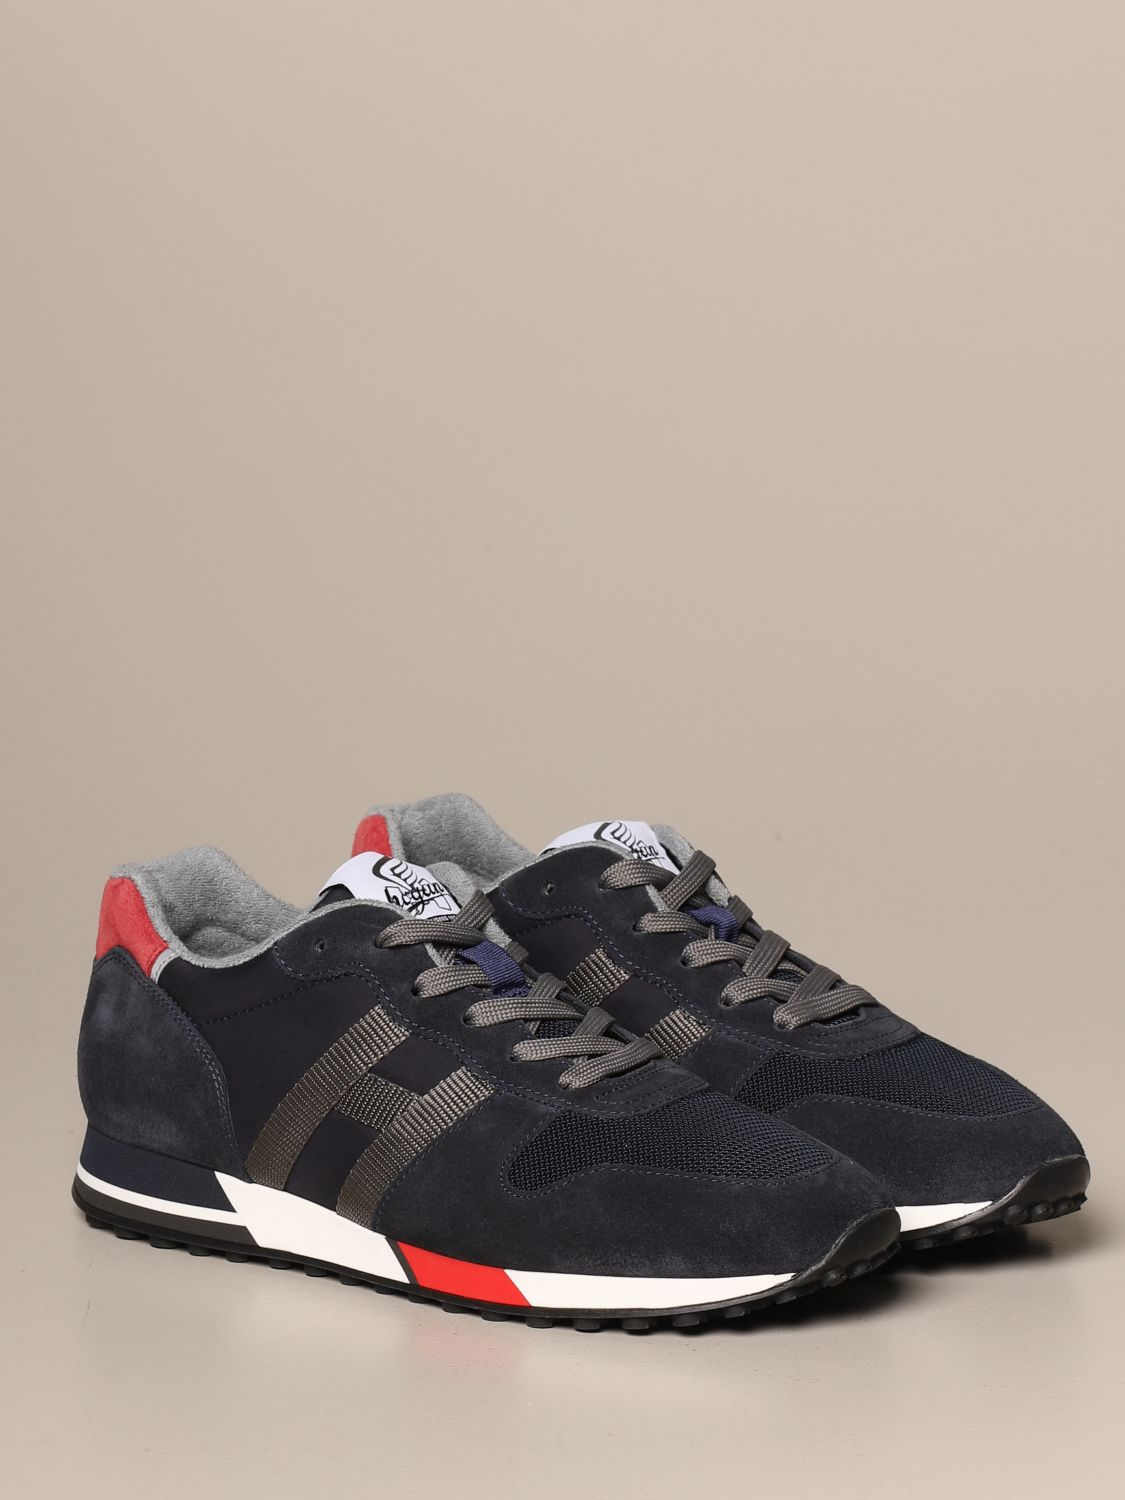 H383 Hogan split leather running sneakers and two-tone mesh